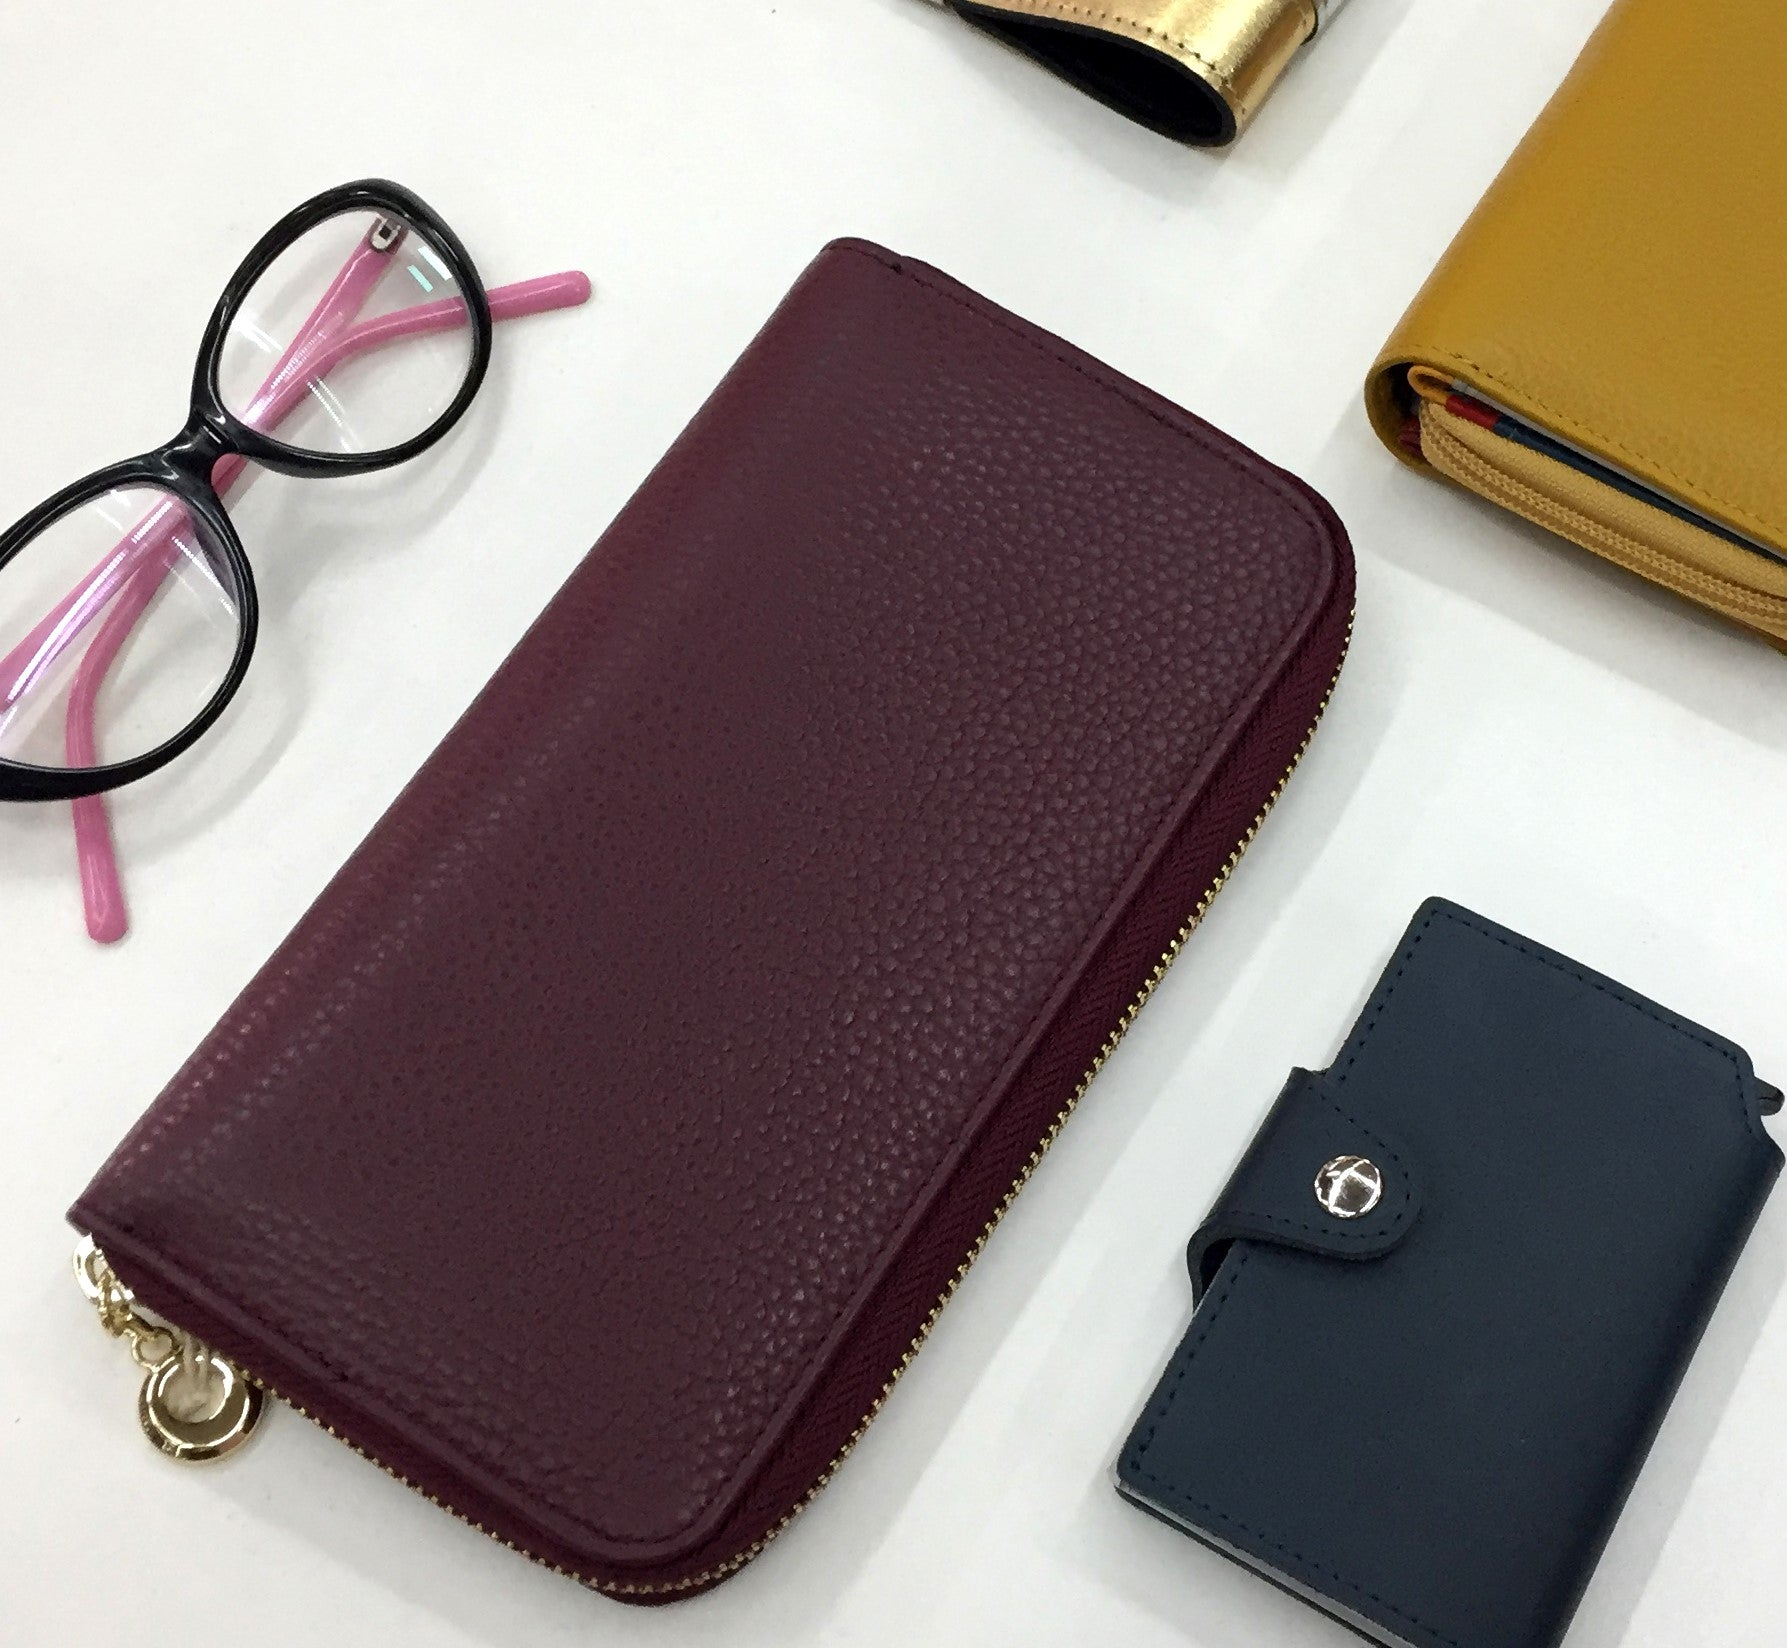 Pashma classic wallet design in royal purple color with attention to detail and quality.